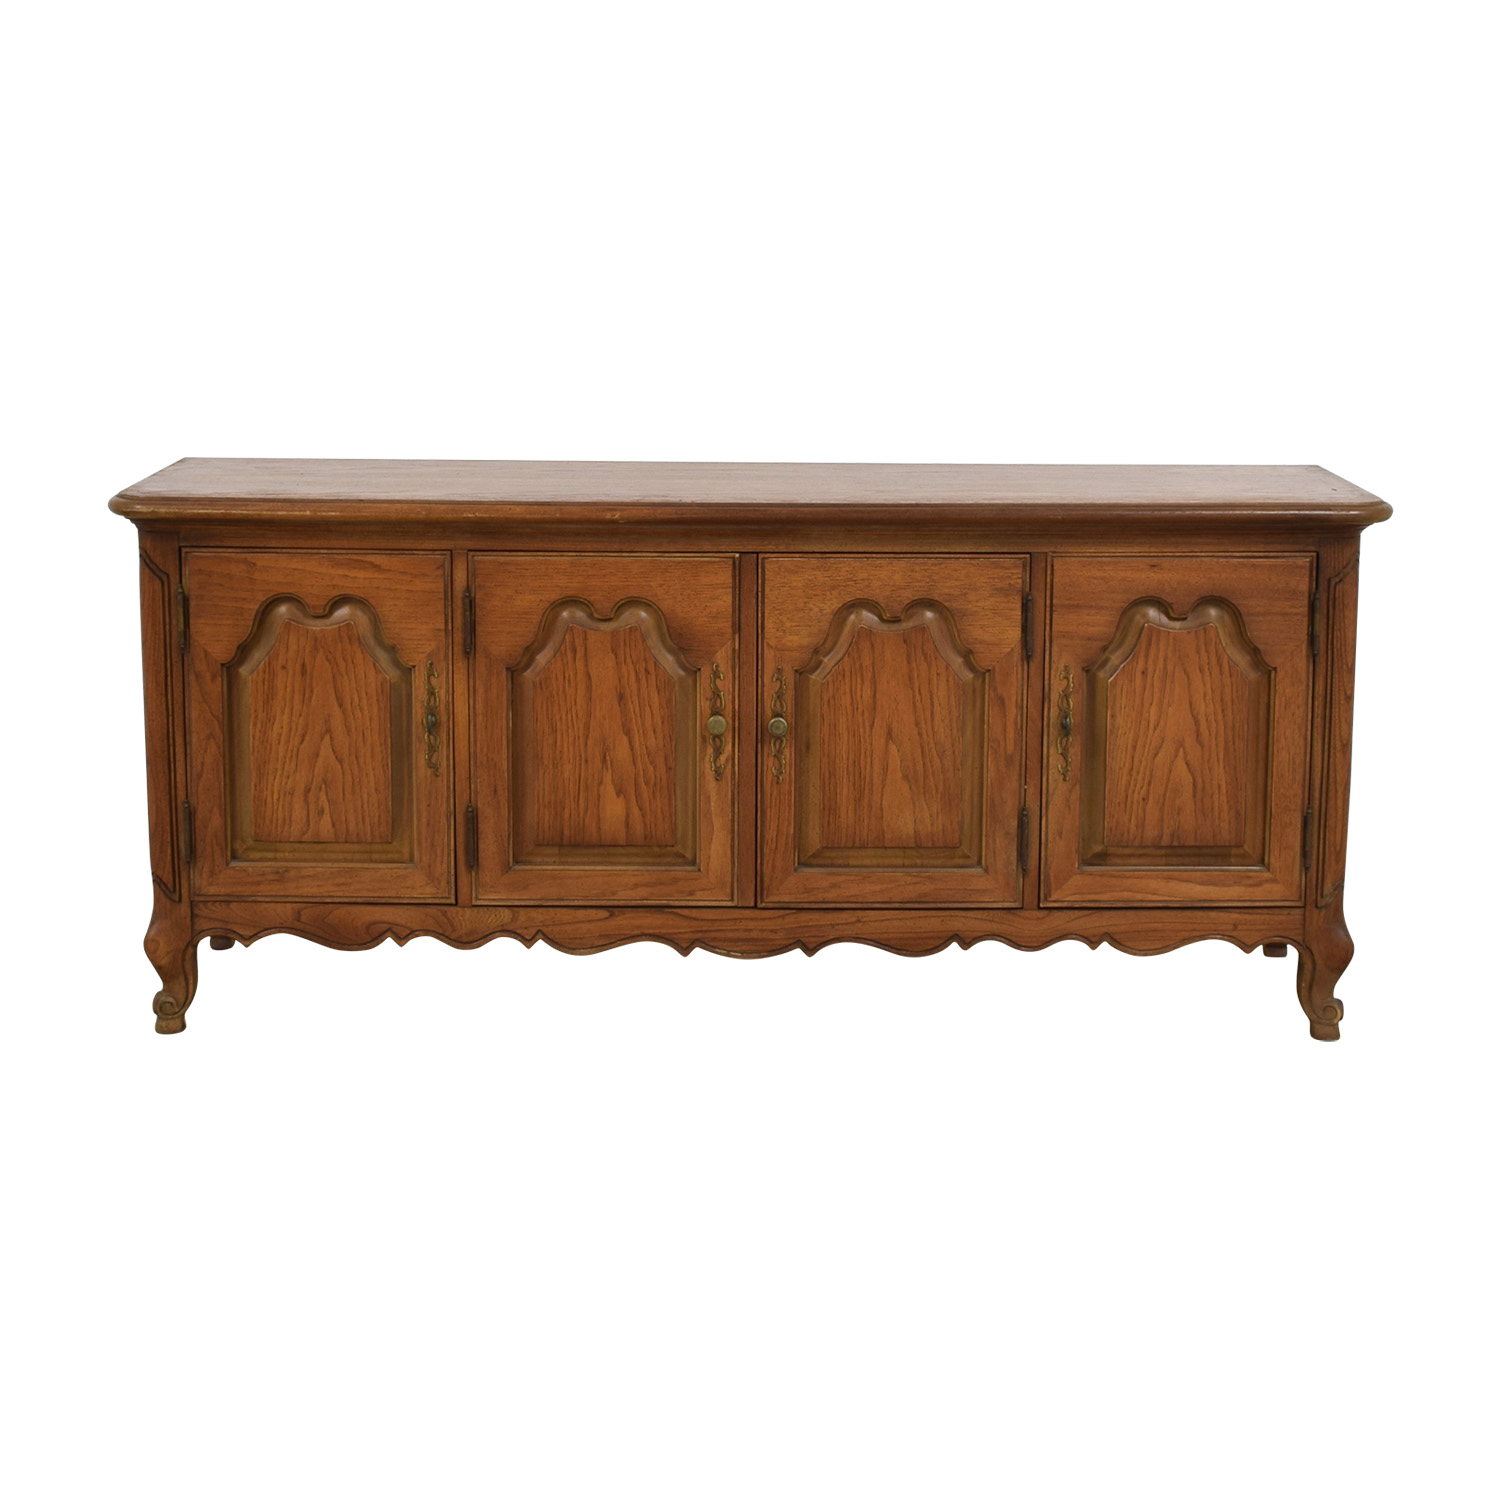 Mount Airy Mount Airy Wooden Credenza second hand